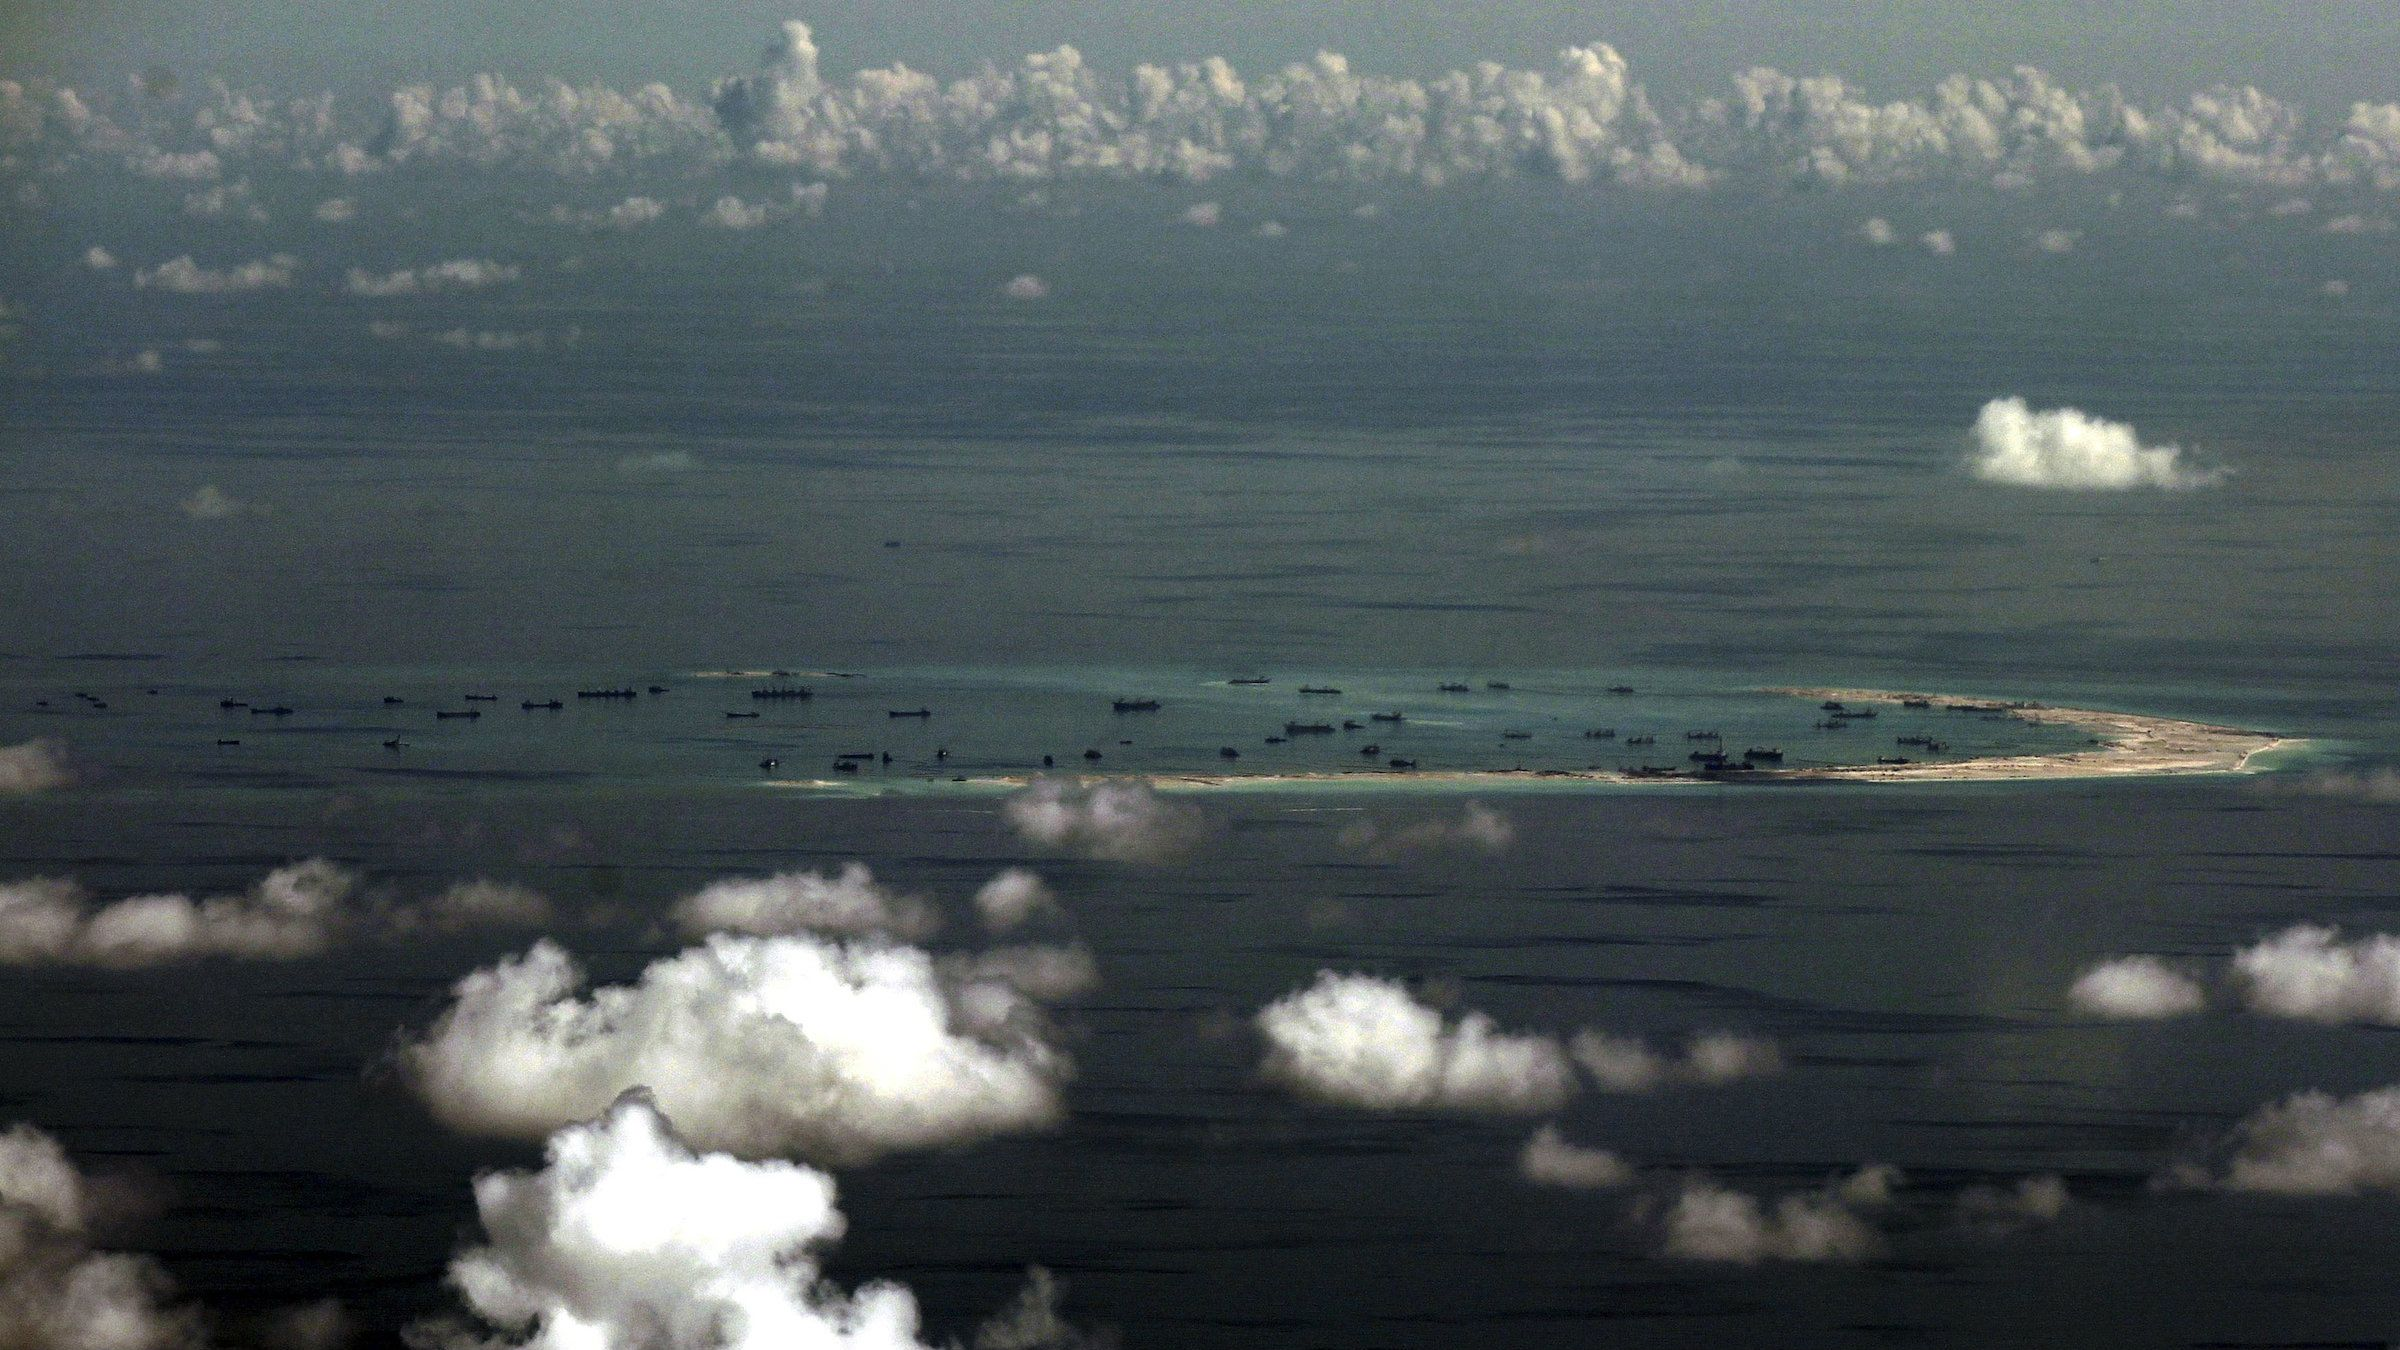 An aerial photo taken though a glass window of a Philippine military plane shows land reclamation by China around the Spratly Islands in the South China Sea.